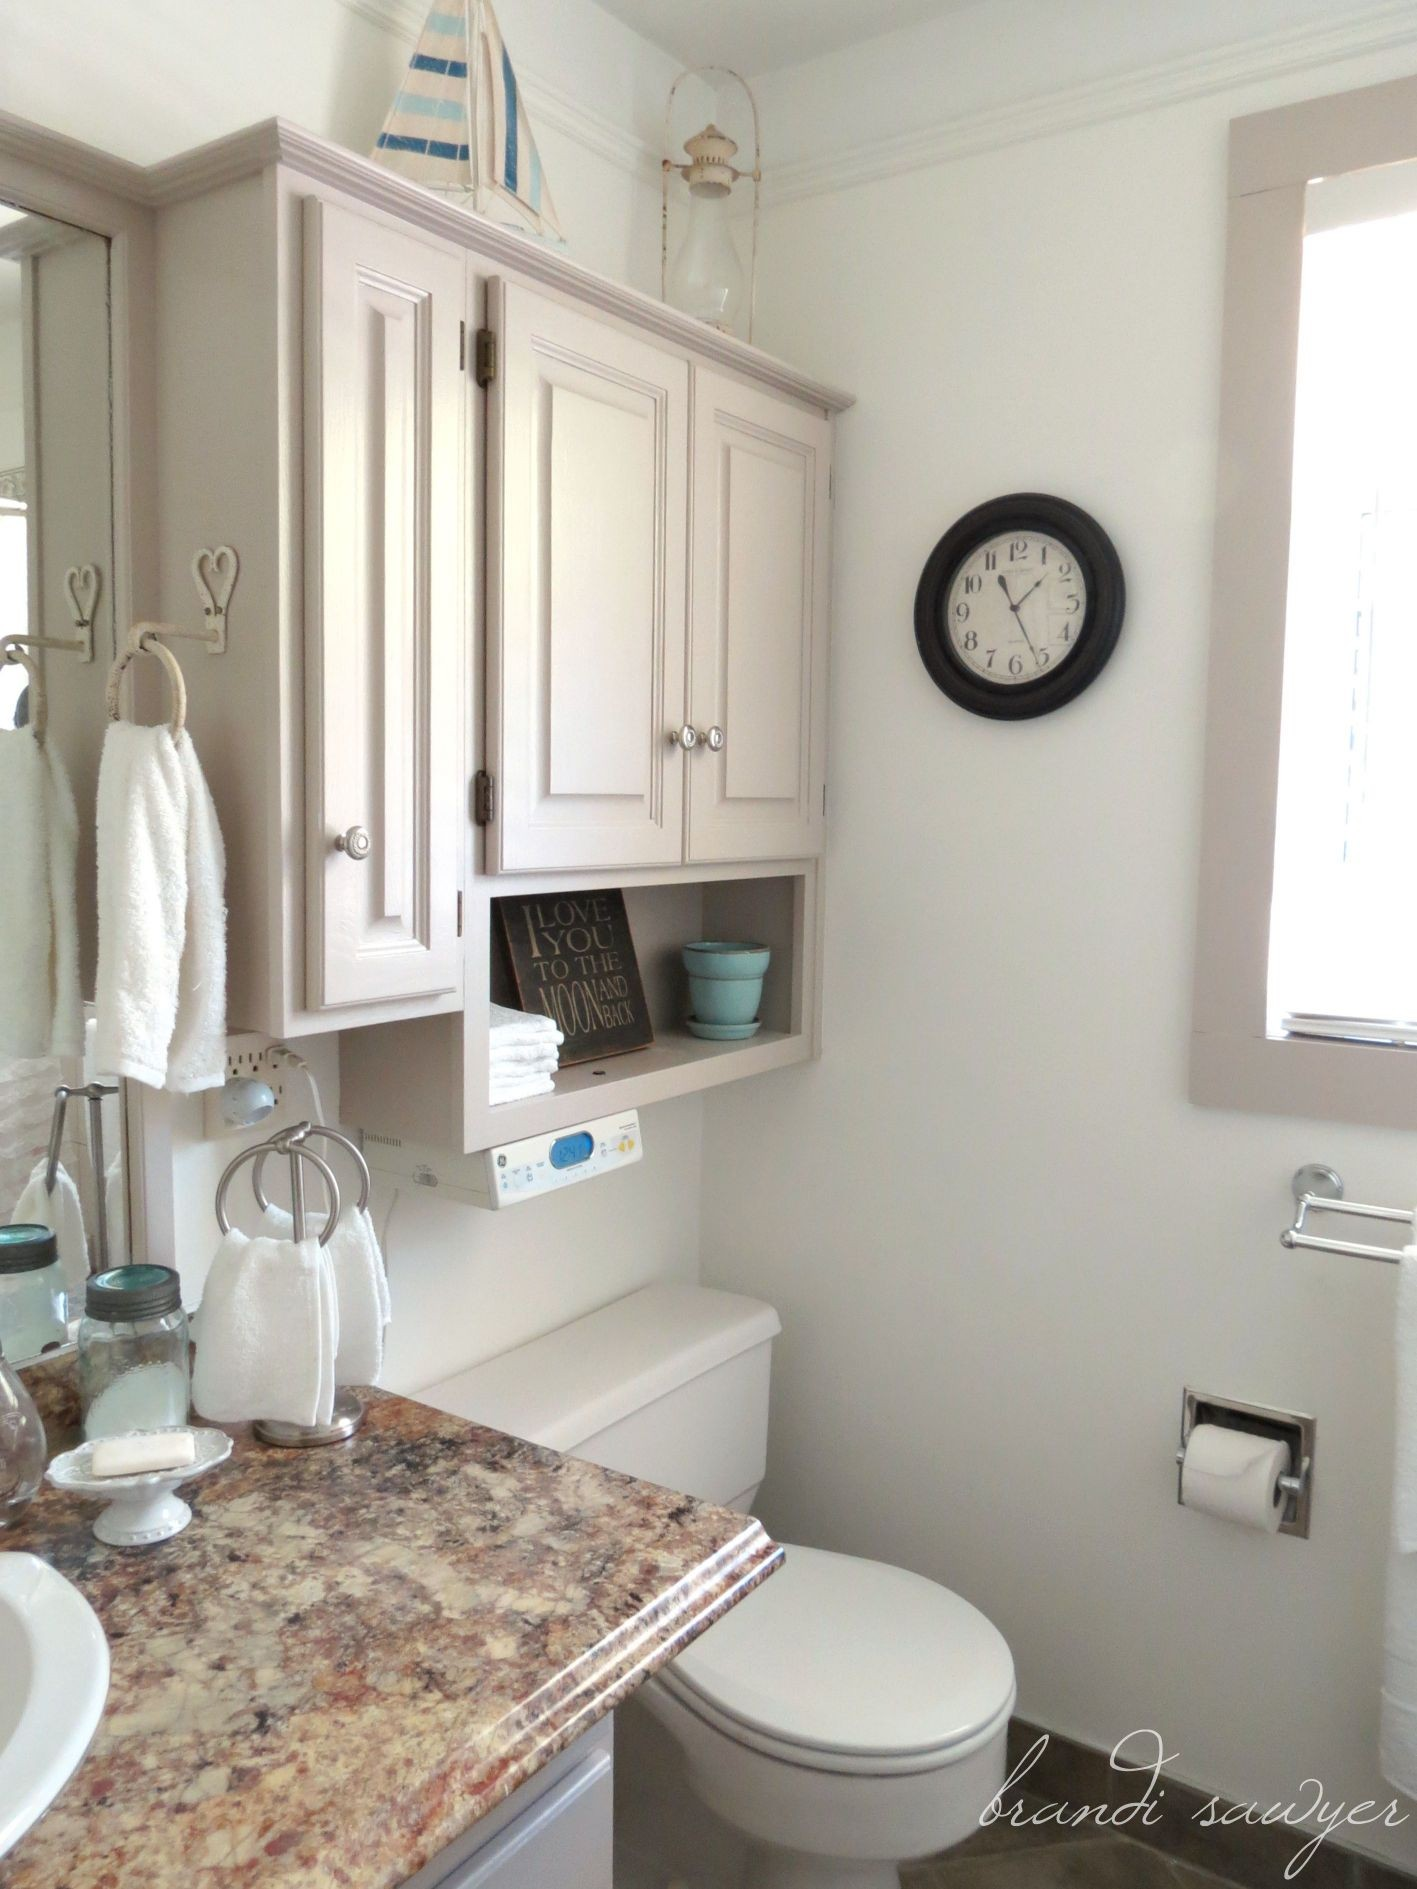 Small Bathroom Makeover Latest Stunning Small Bathroom Makeover Renovation Pic Styles and Portrait